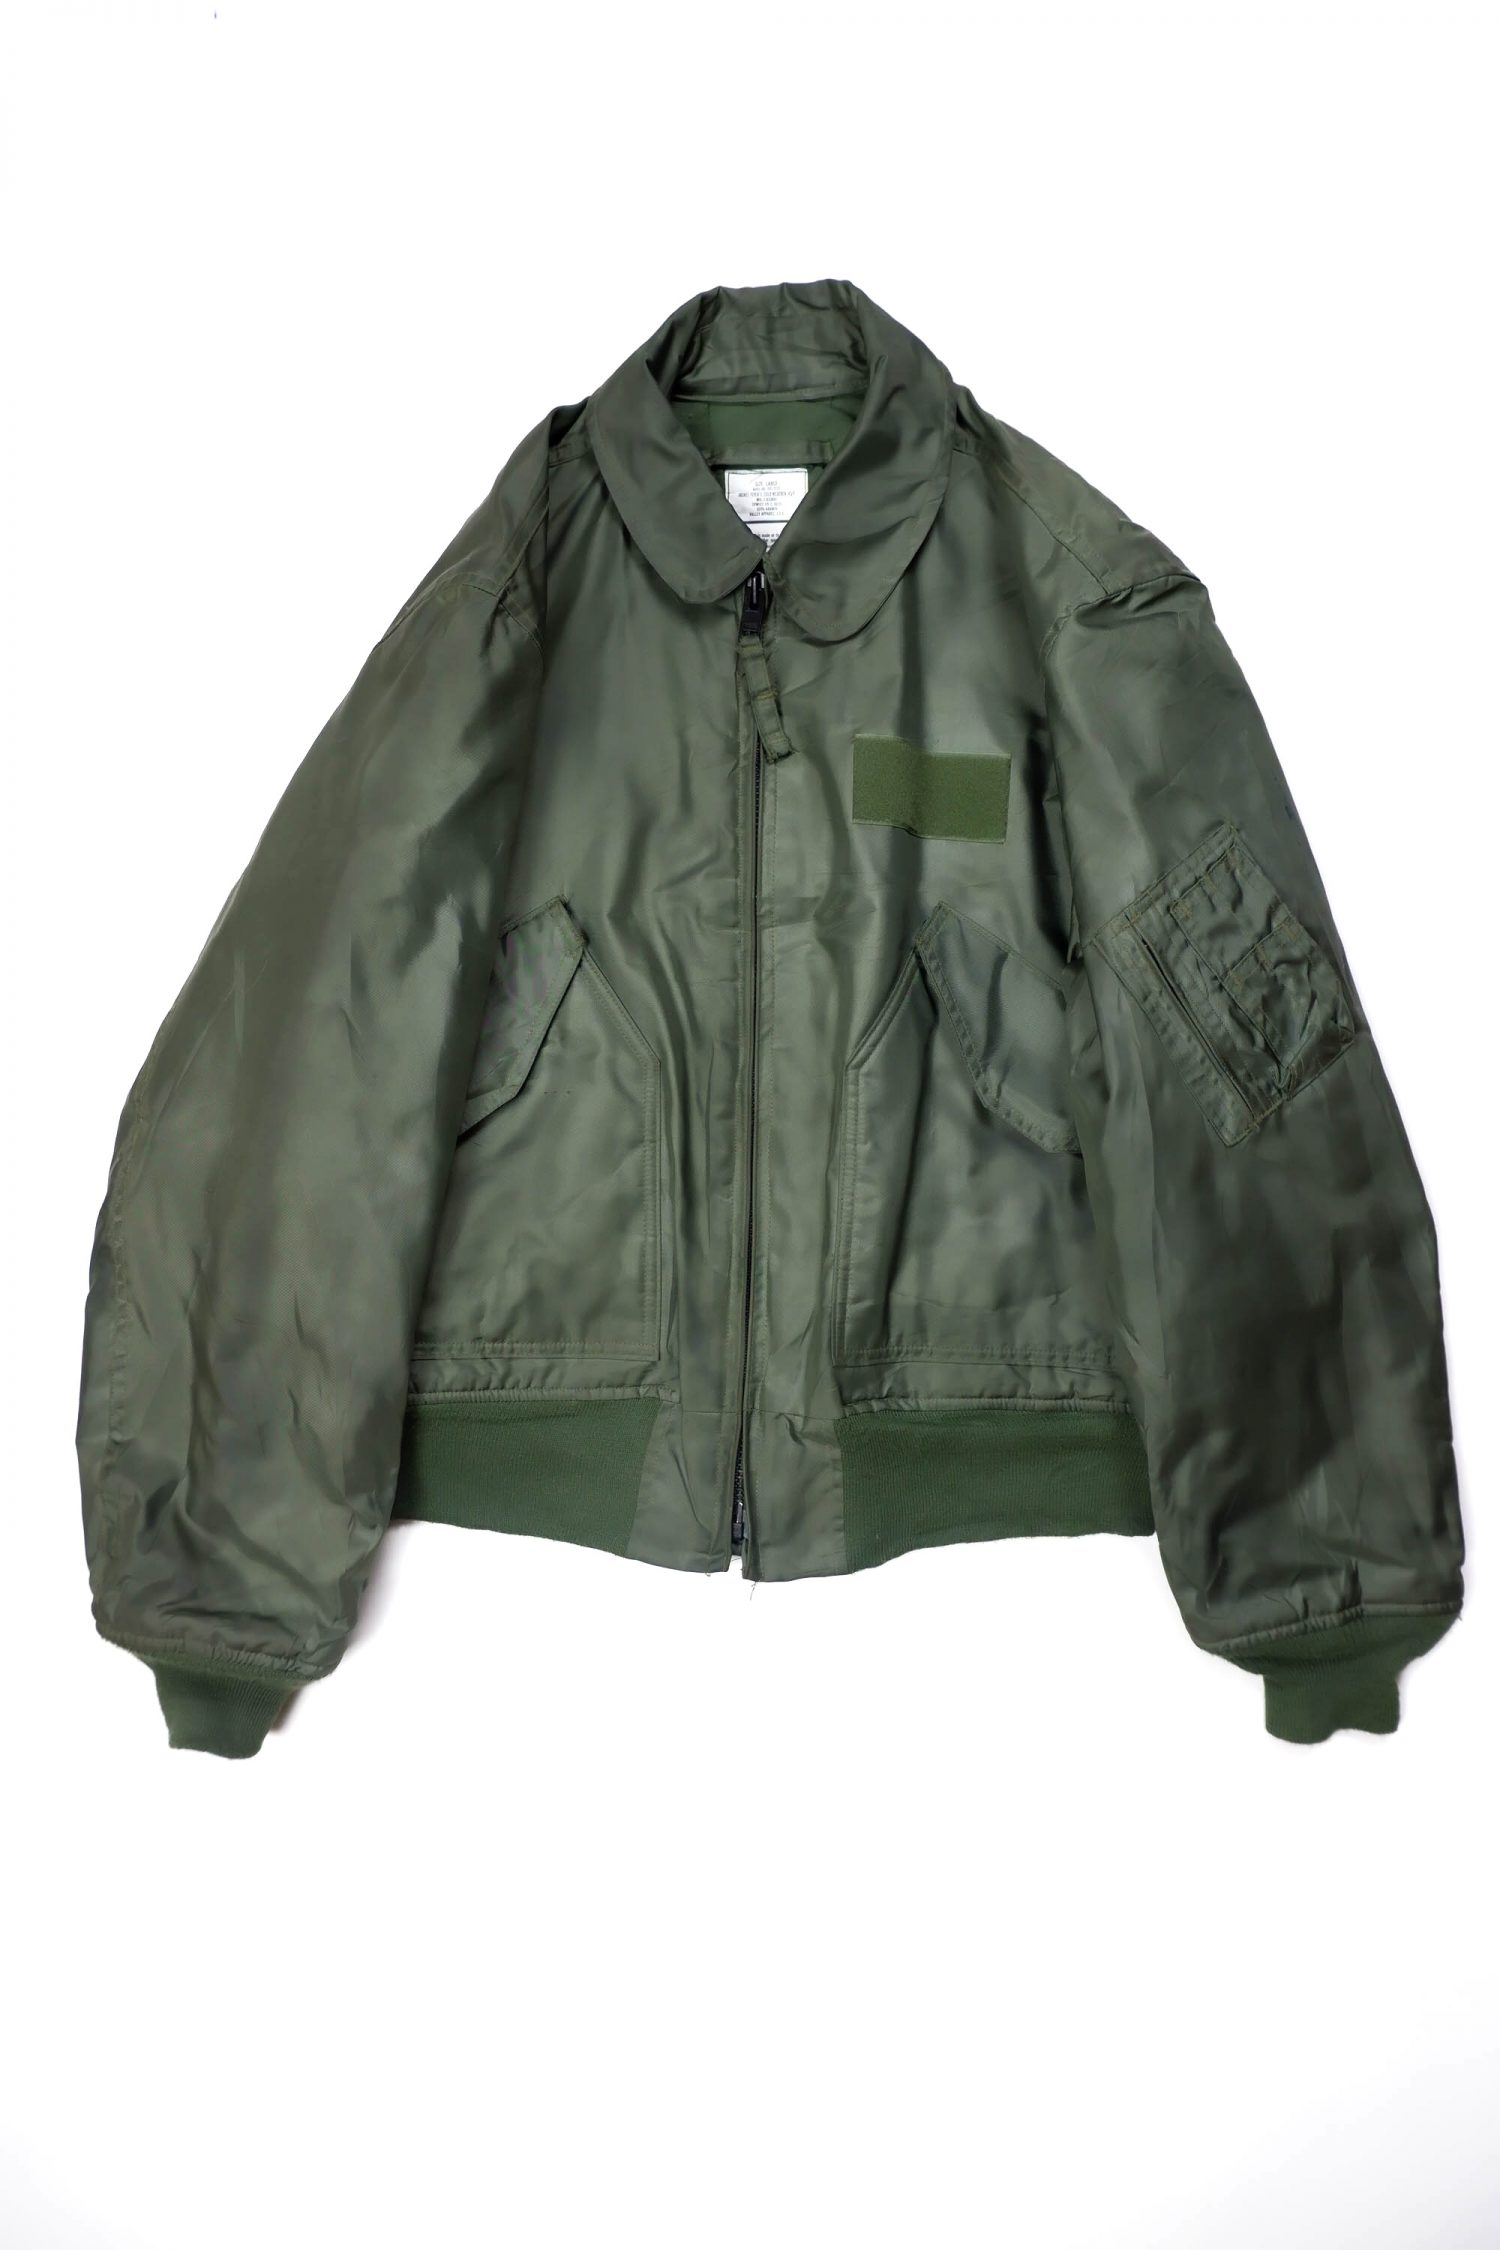 CWU-45P Flyer's Jacket